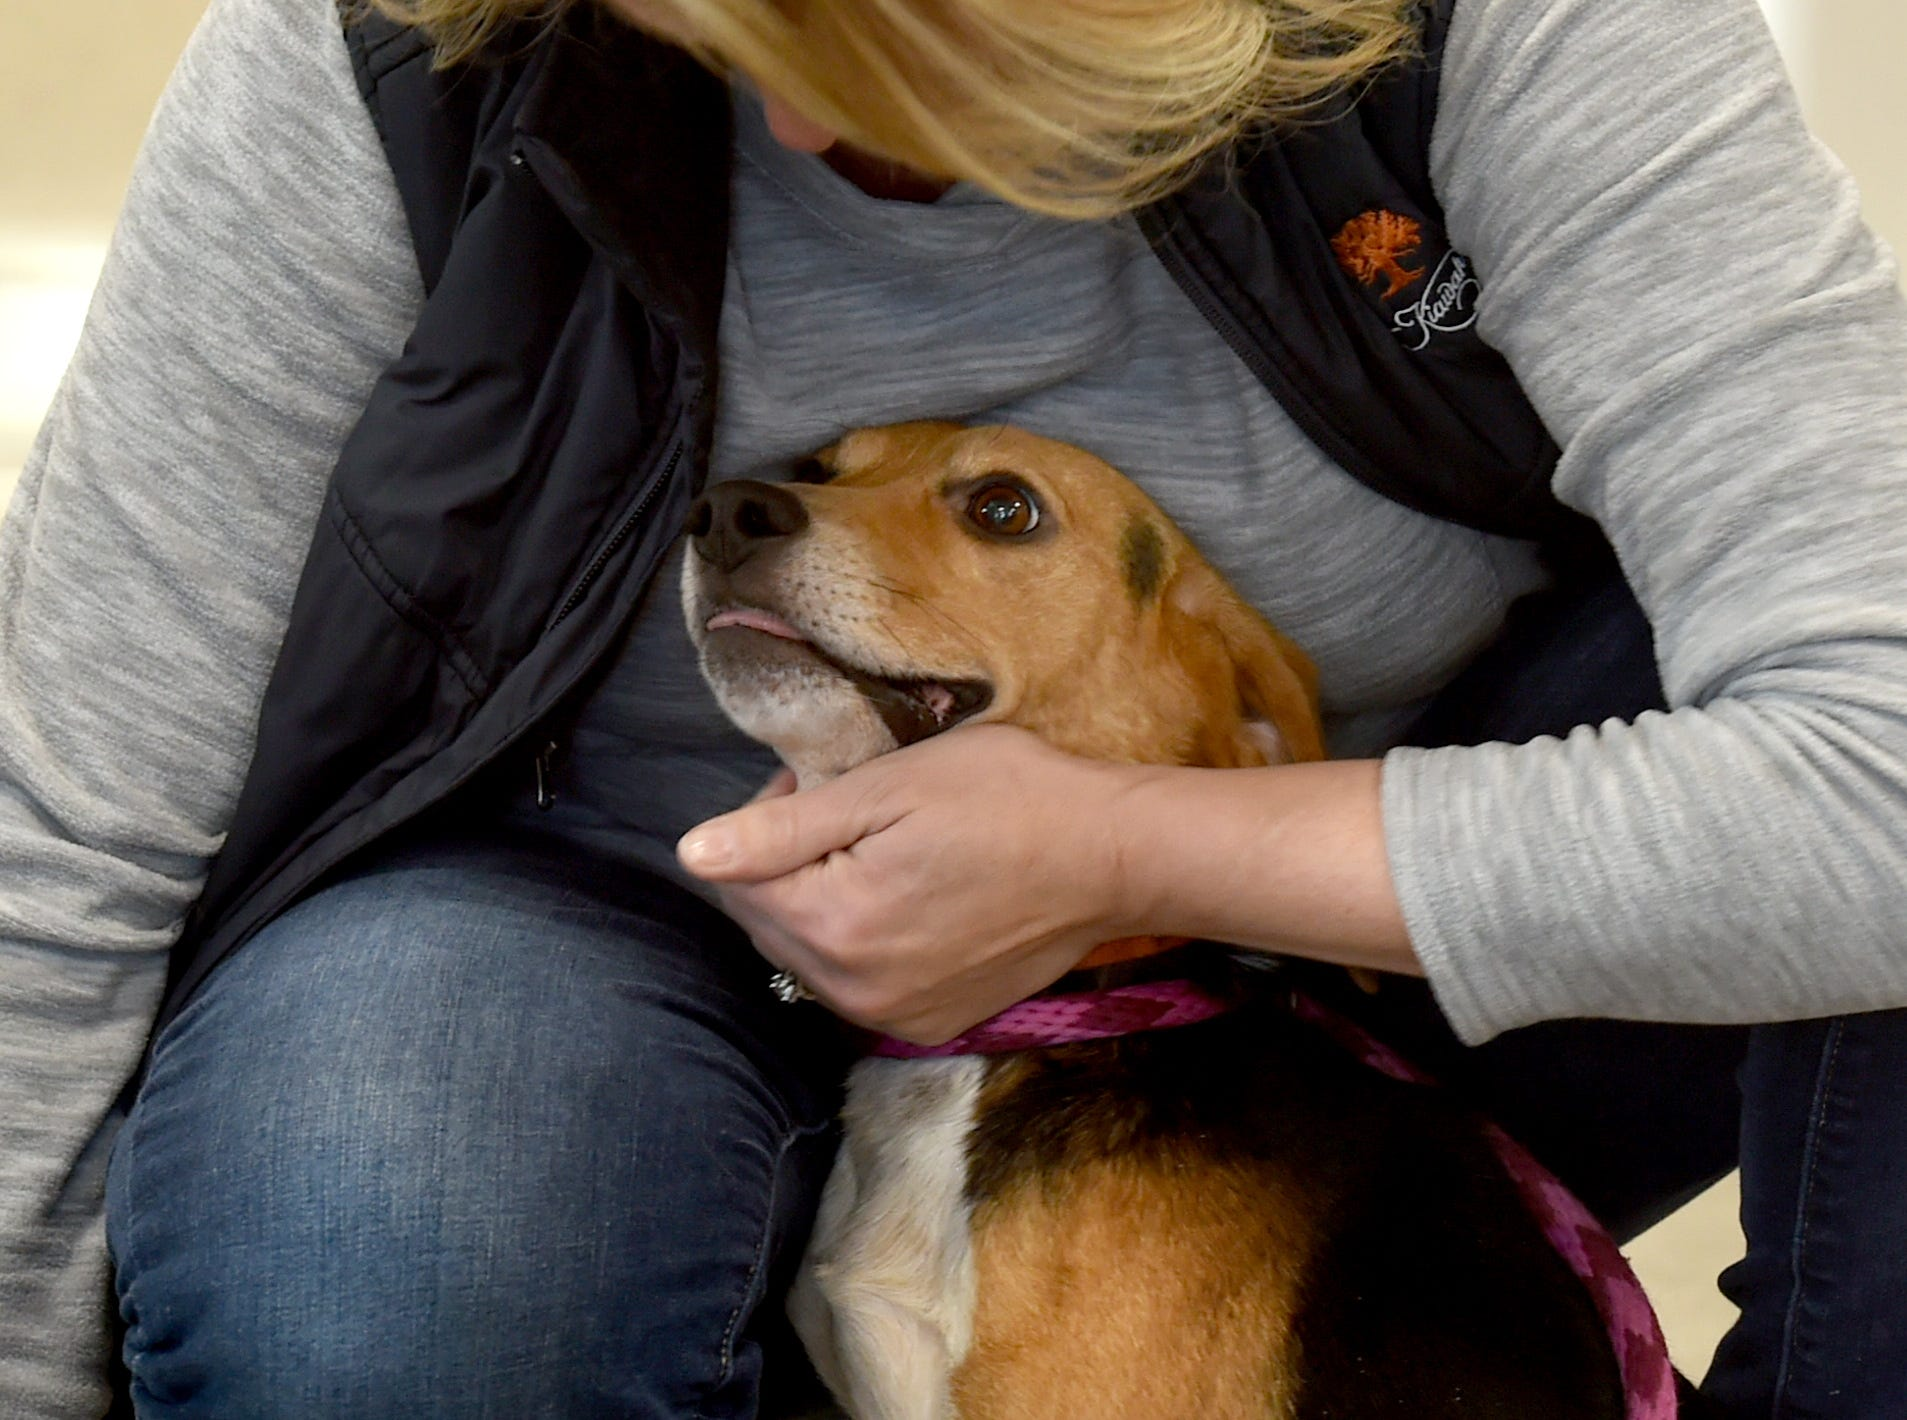 Adam, one of two beagles thrown from a vehicle in December, is cuddled by a volunteer at the Broome County Humane Society. Named Trooper and Adam for the state trooper and truck driver who rescued them, the pair are in the care of the Binghamton shelter. Trooper had to have one leg amputated due to the injury he sustained but is recovering well. January 11, 2019.